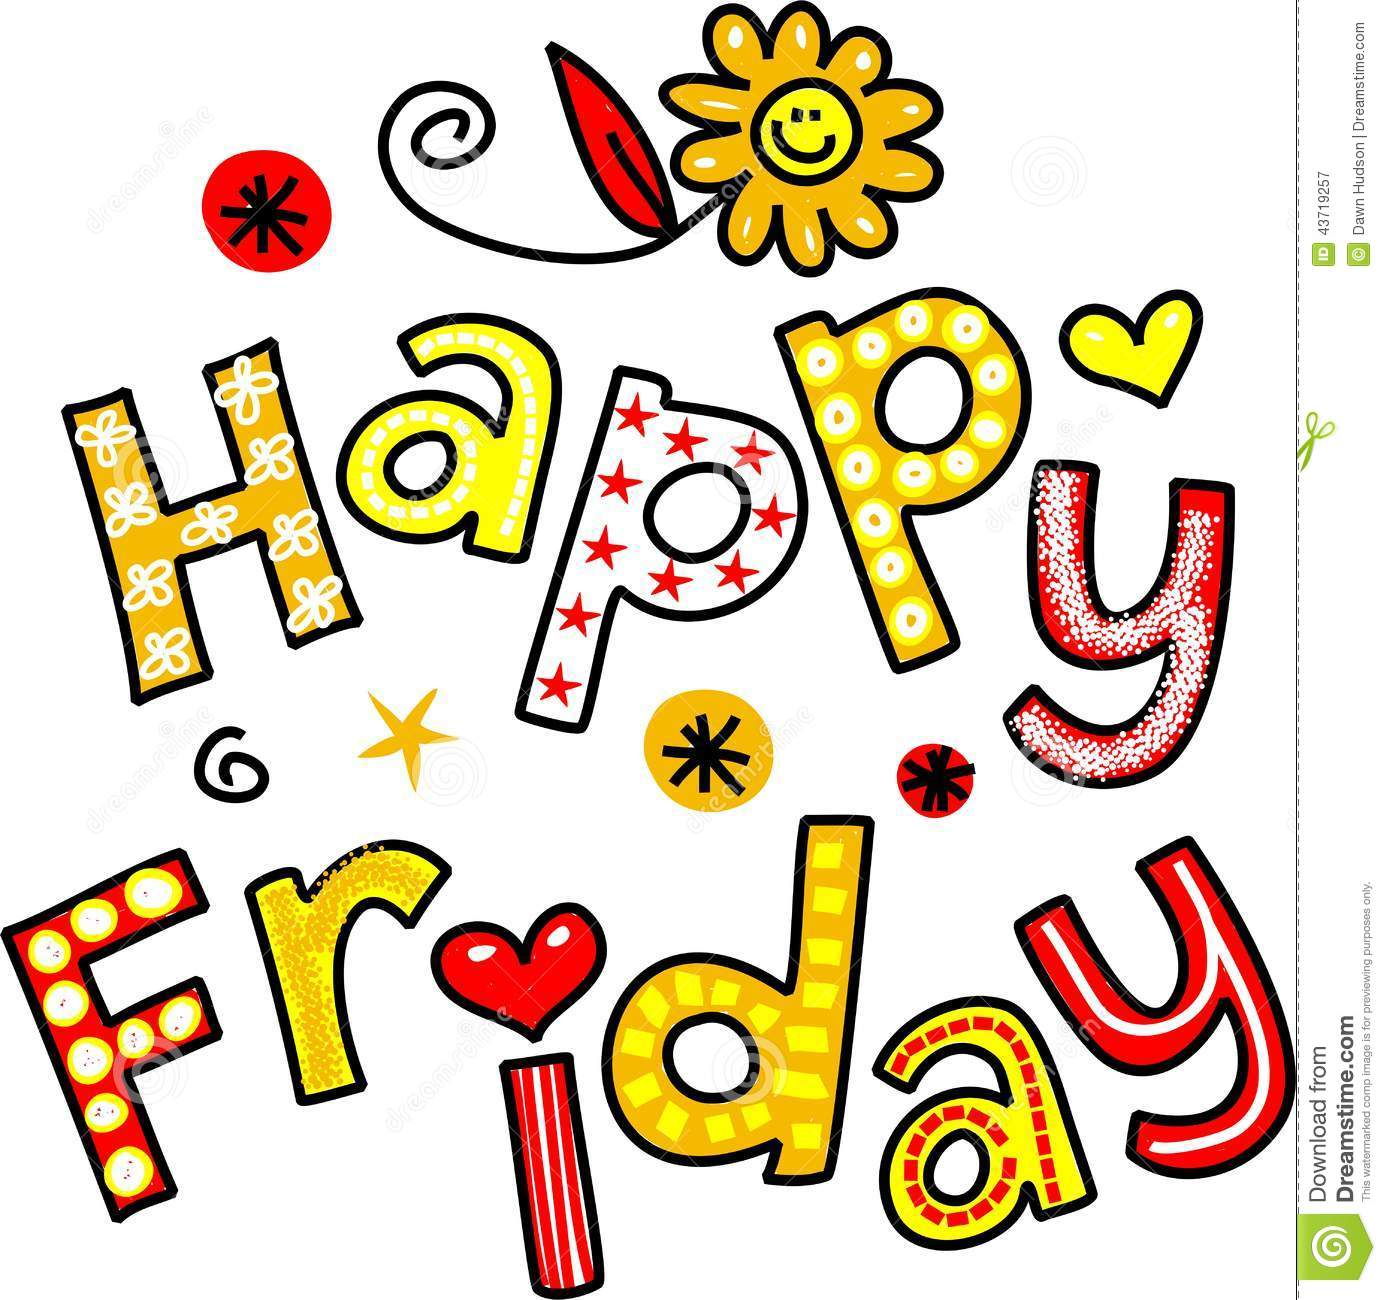 Happy Friday Cartoon Text Clipart Stock Illustration Image 43719257